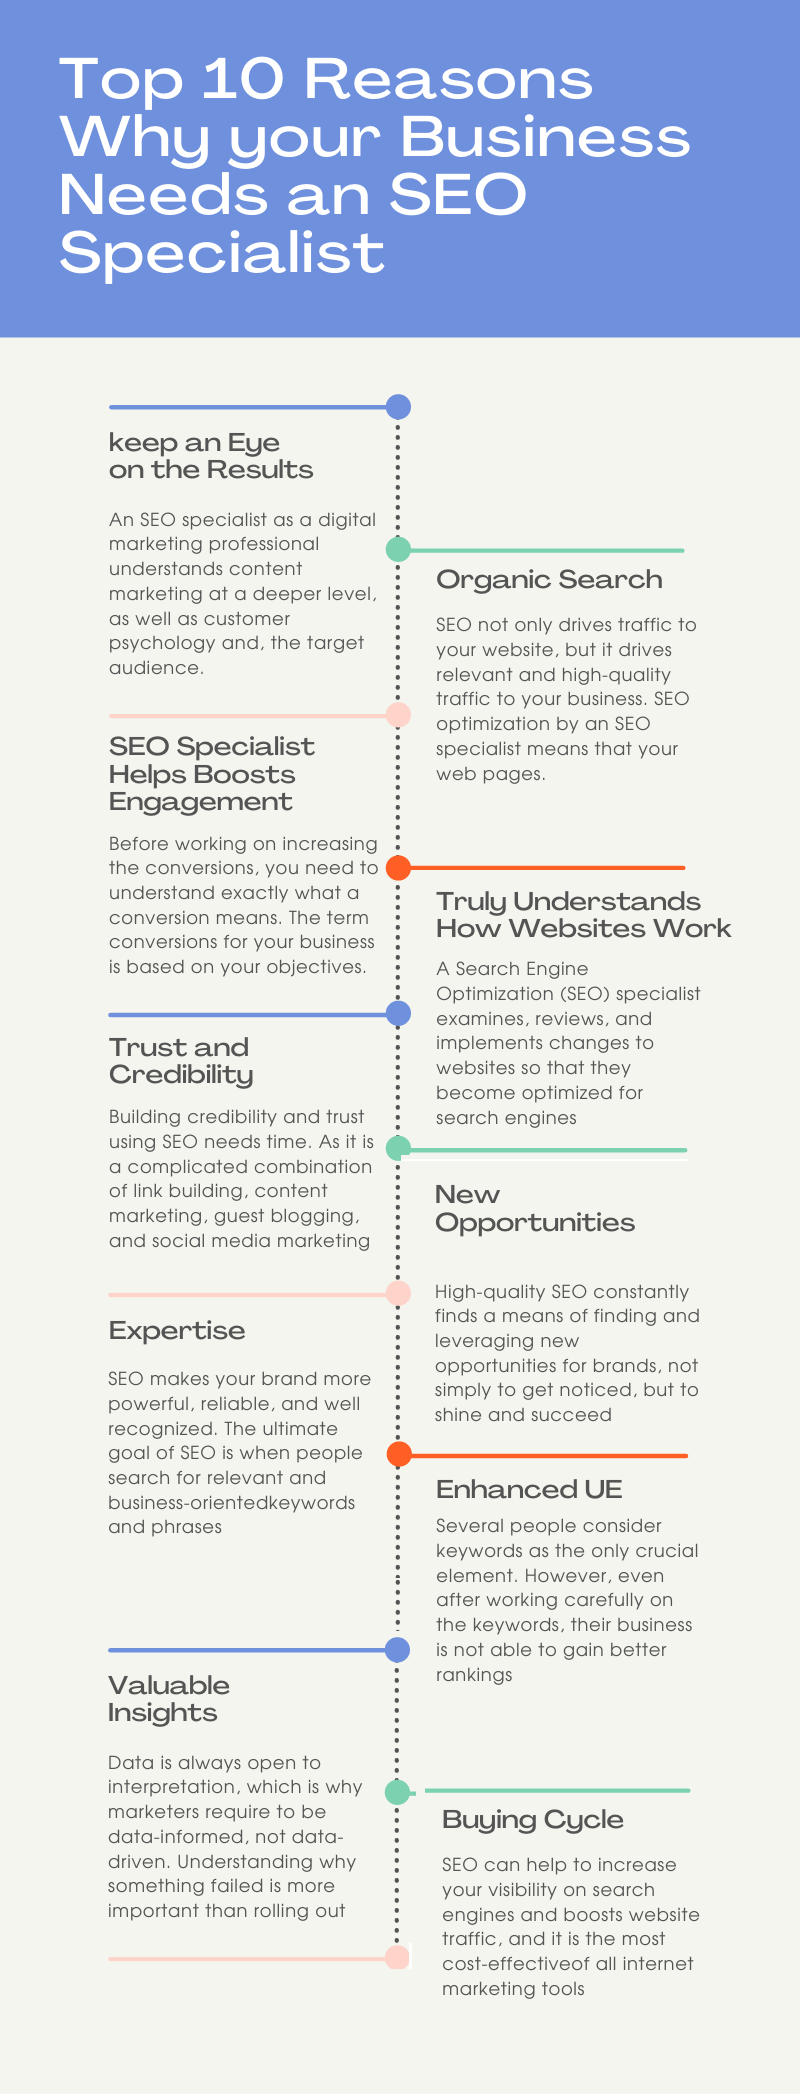 needs an SEO specialist infographic